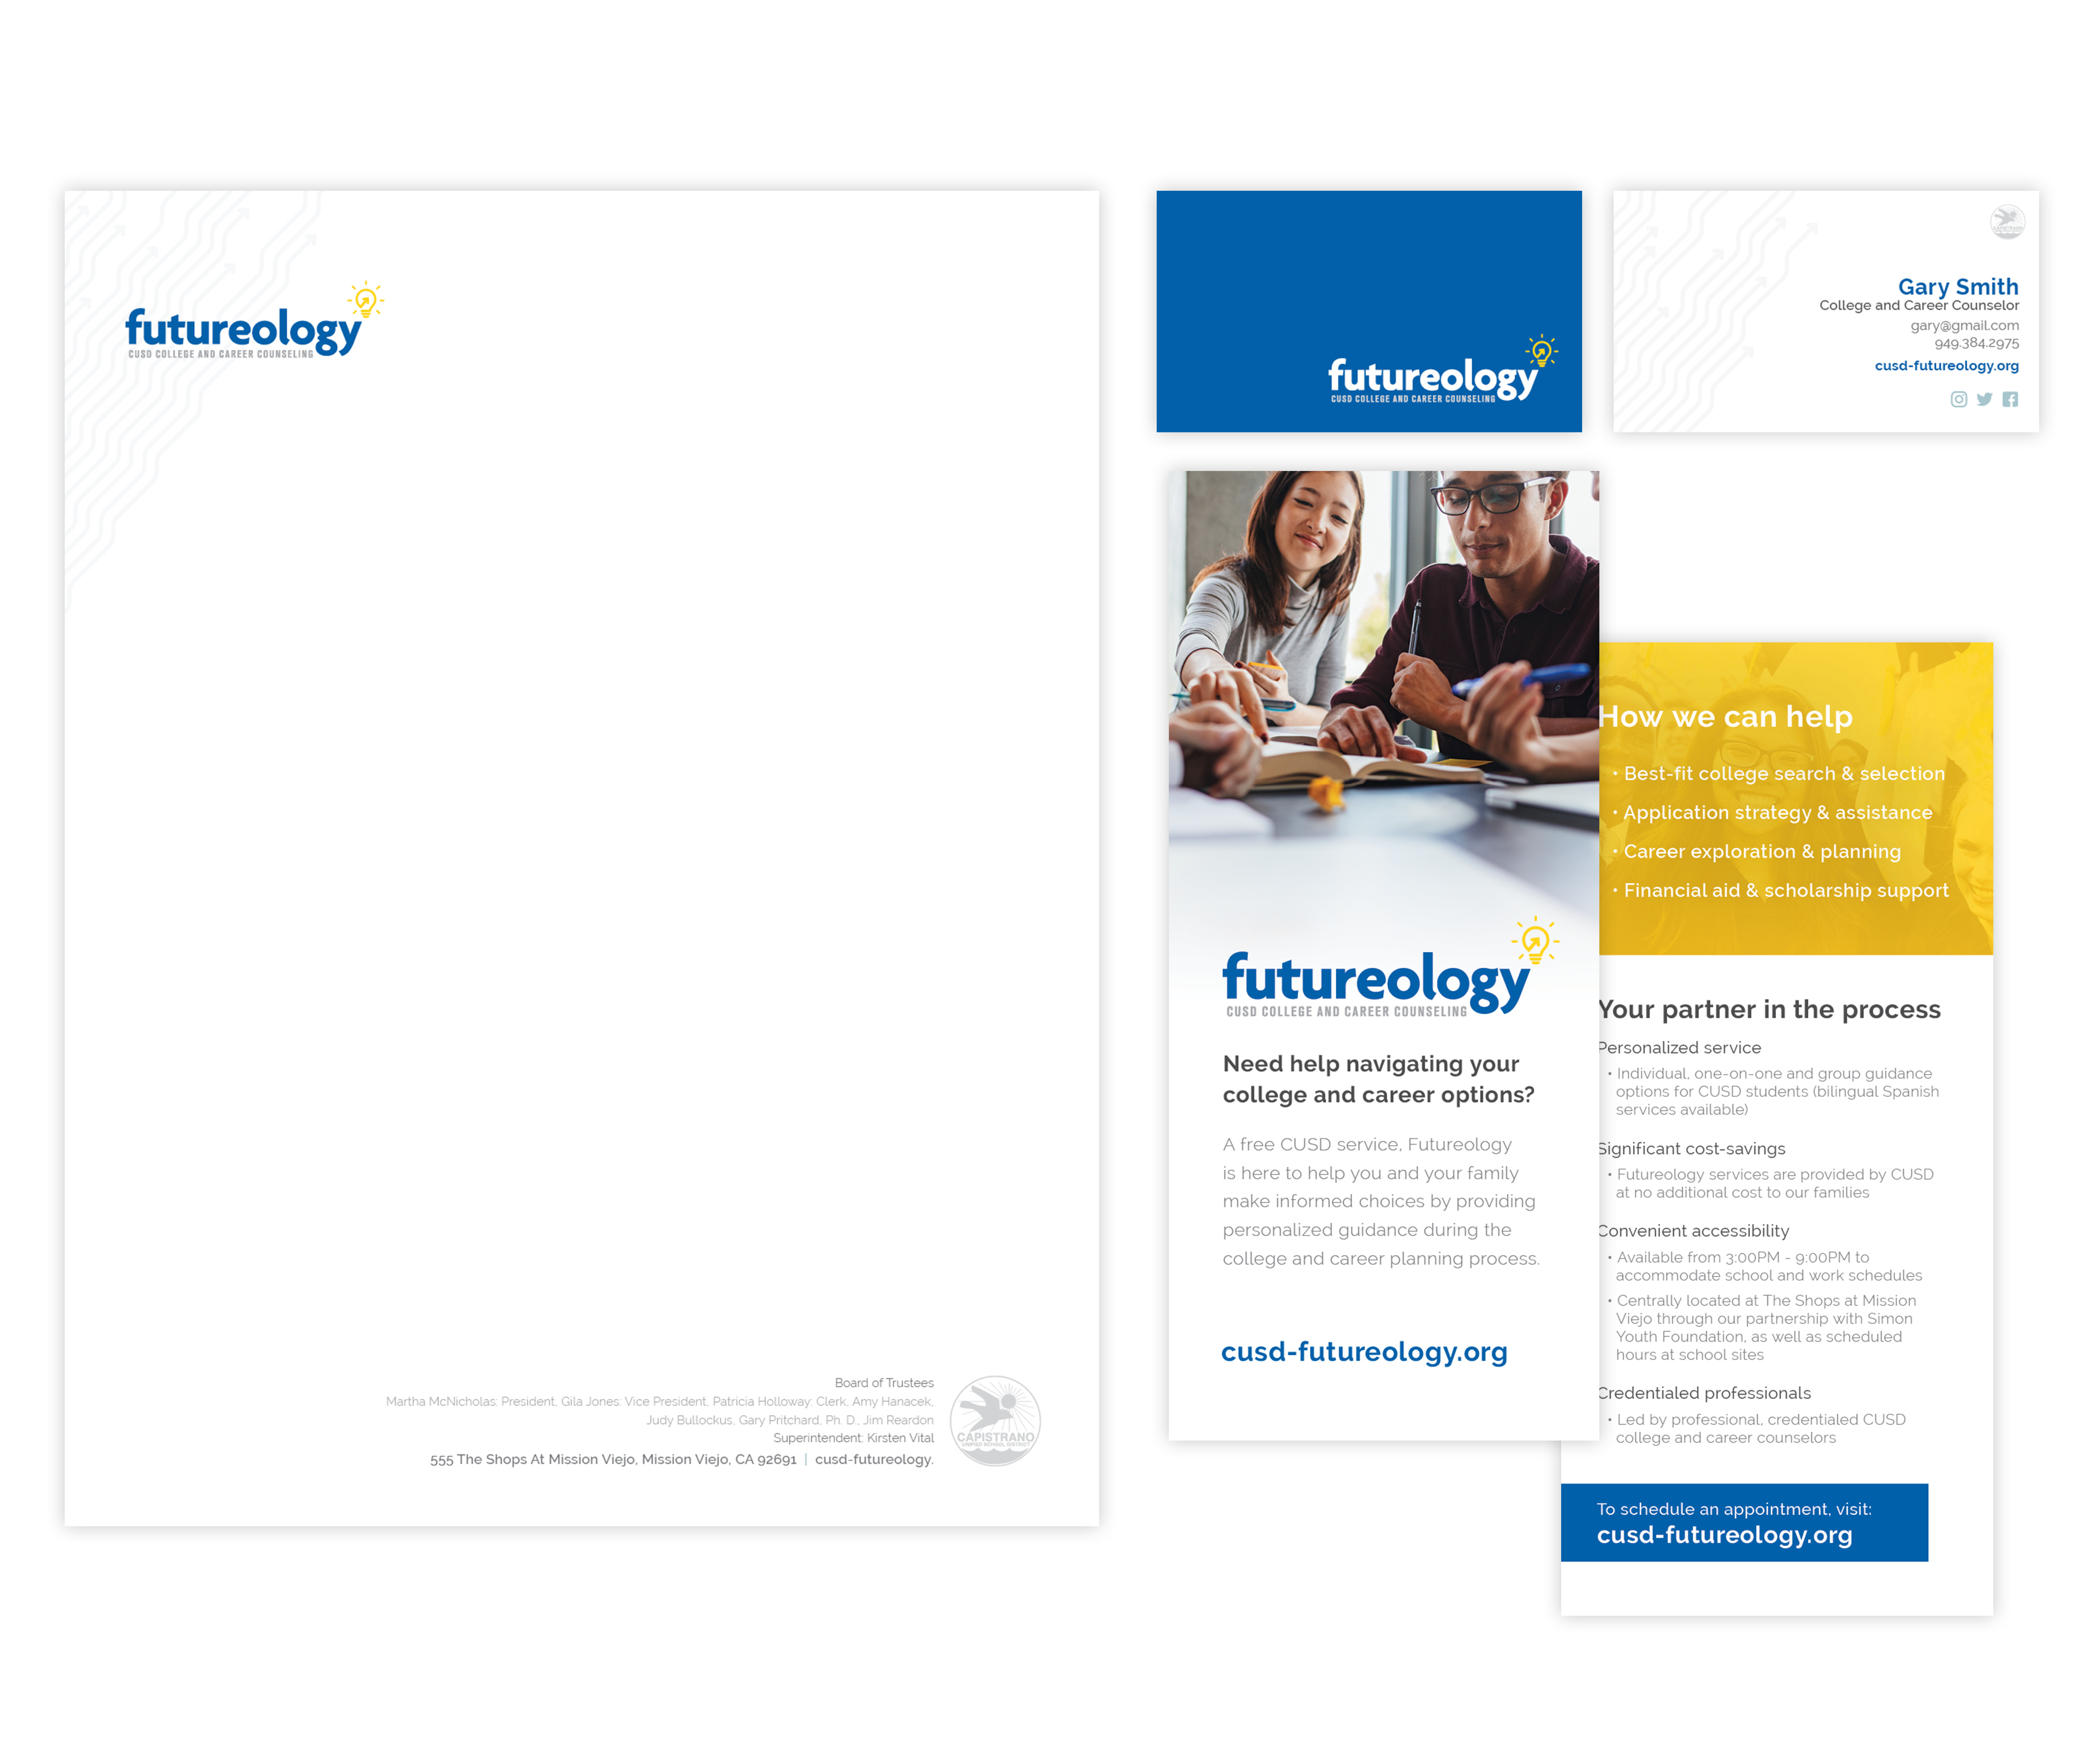 Futureology brand collateral